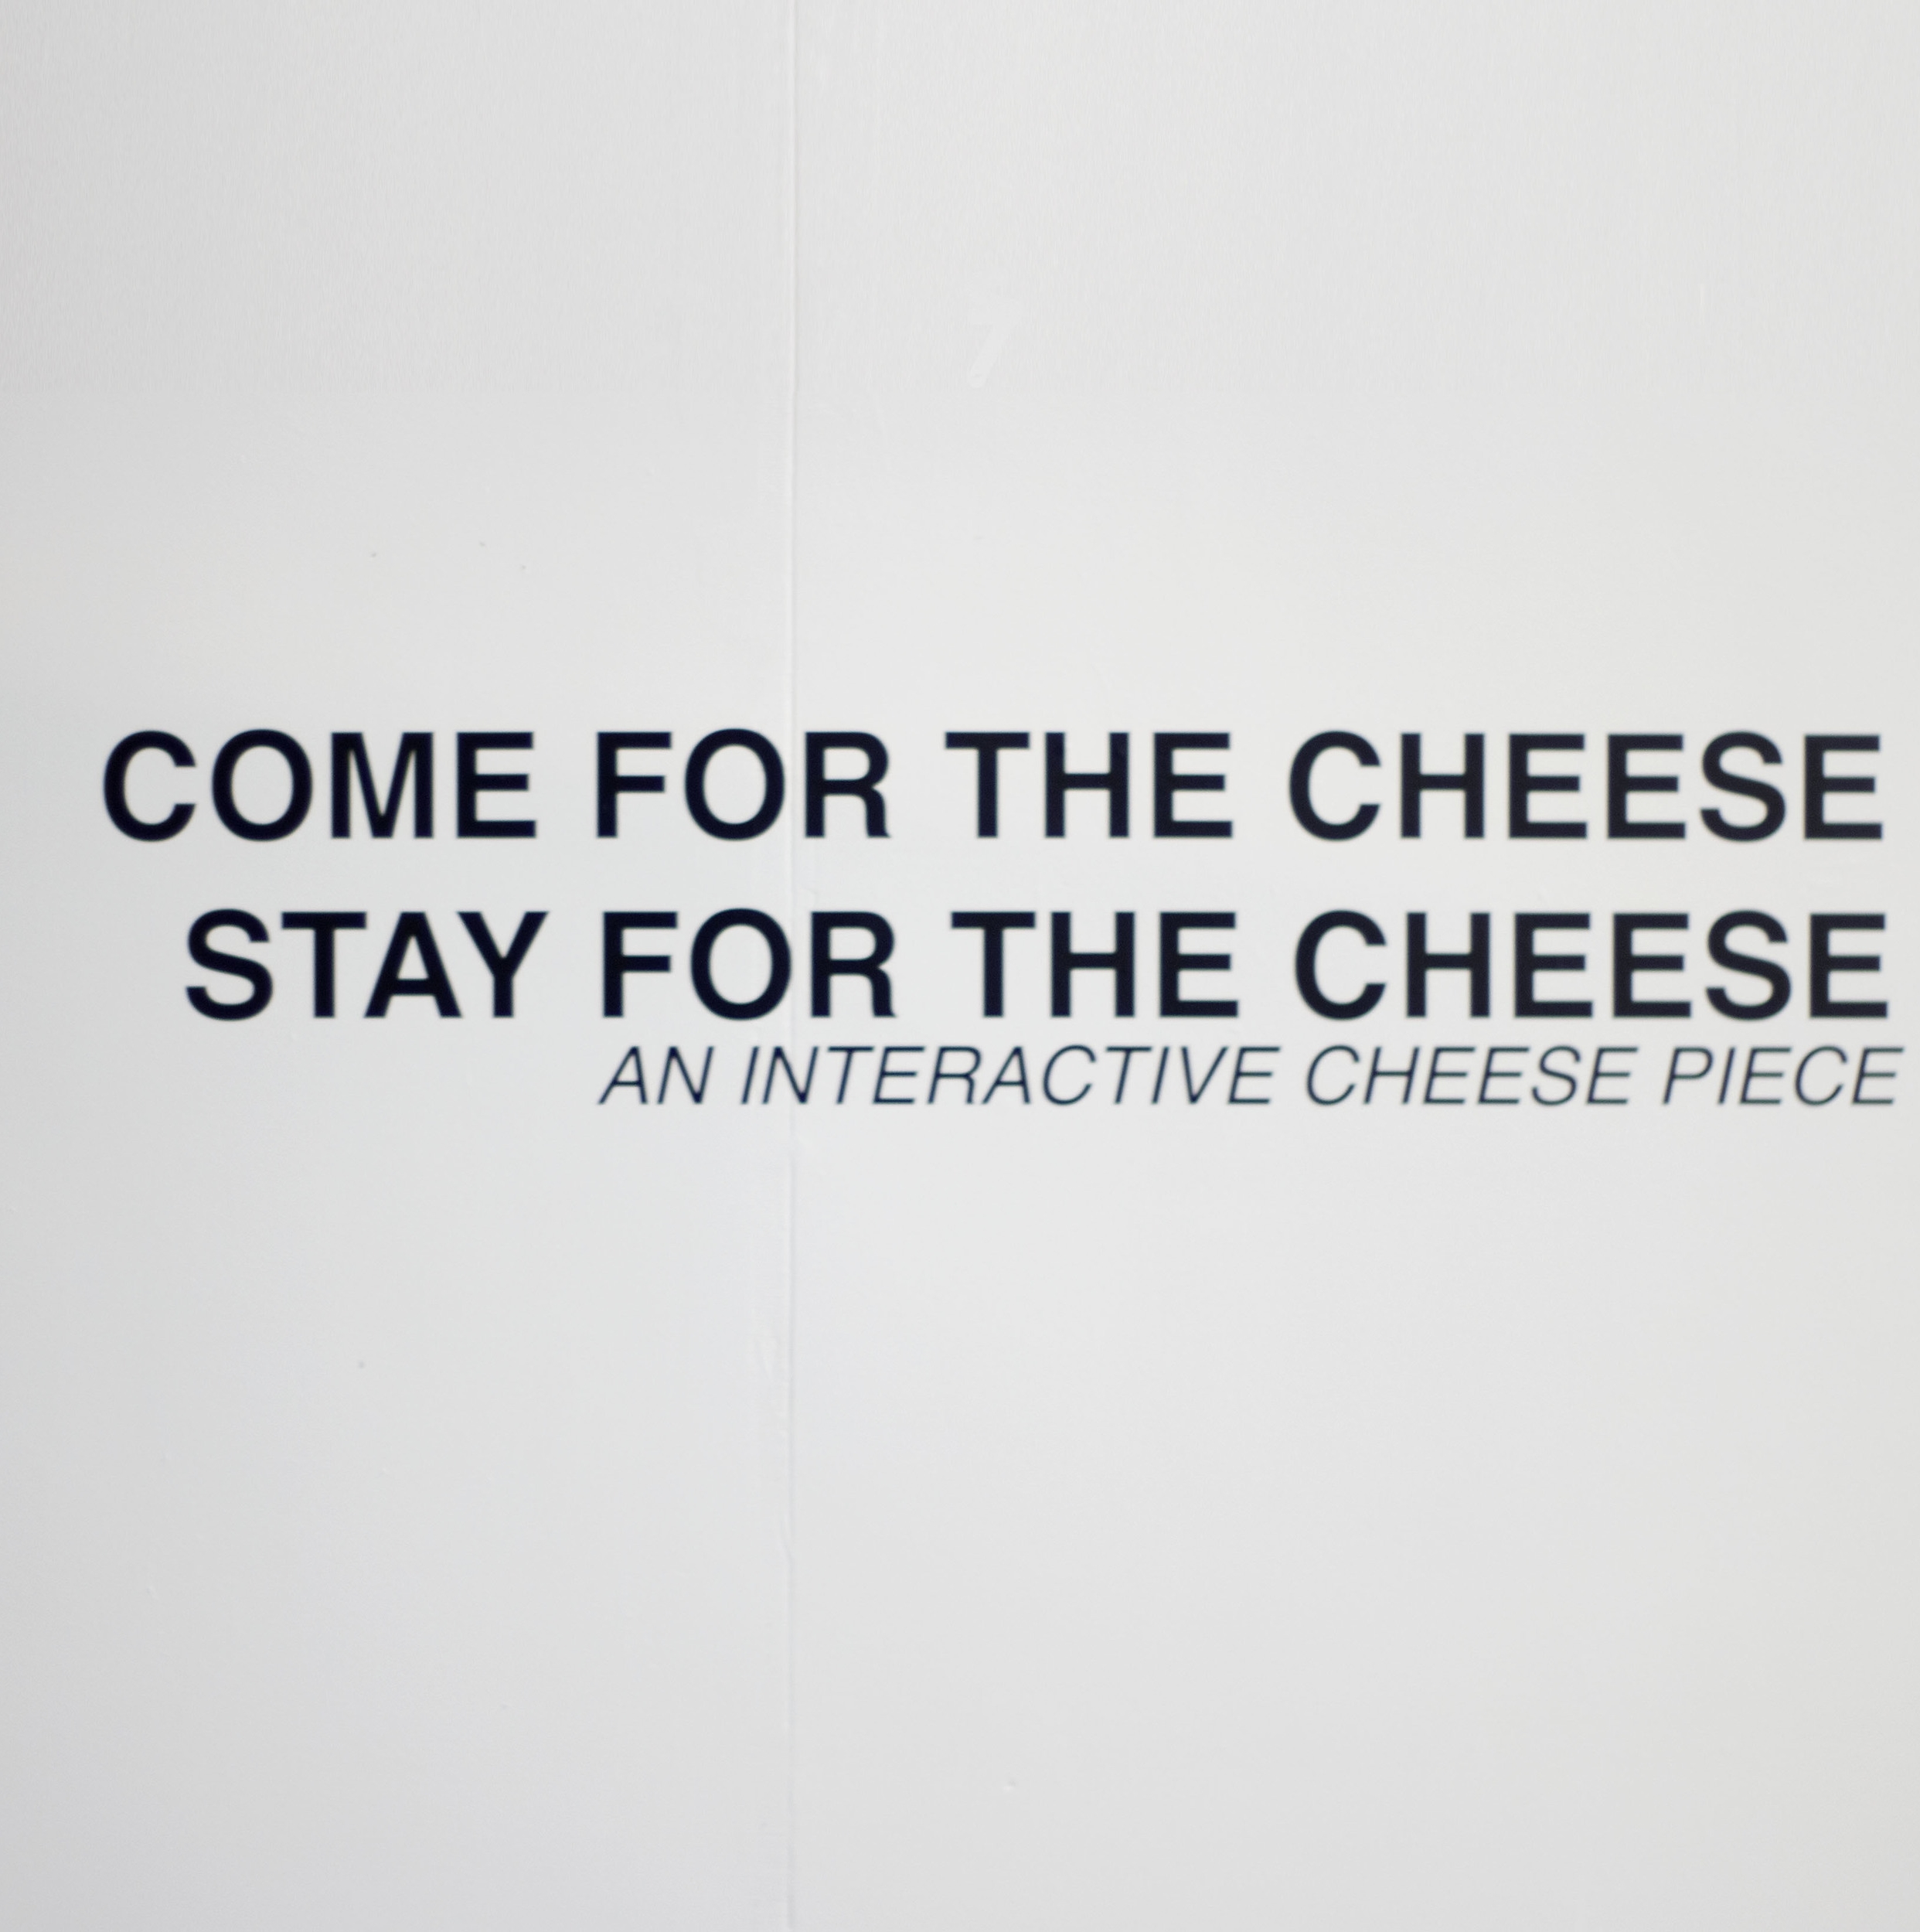 come4thecheese035.jpg